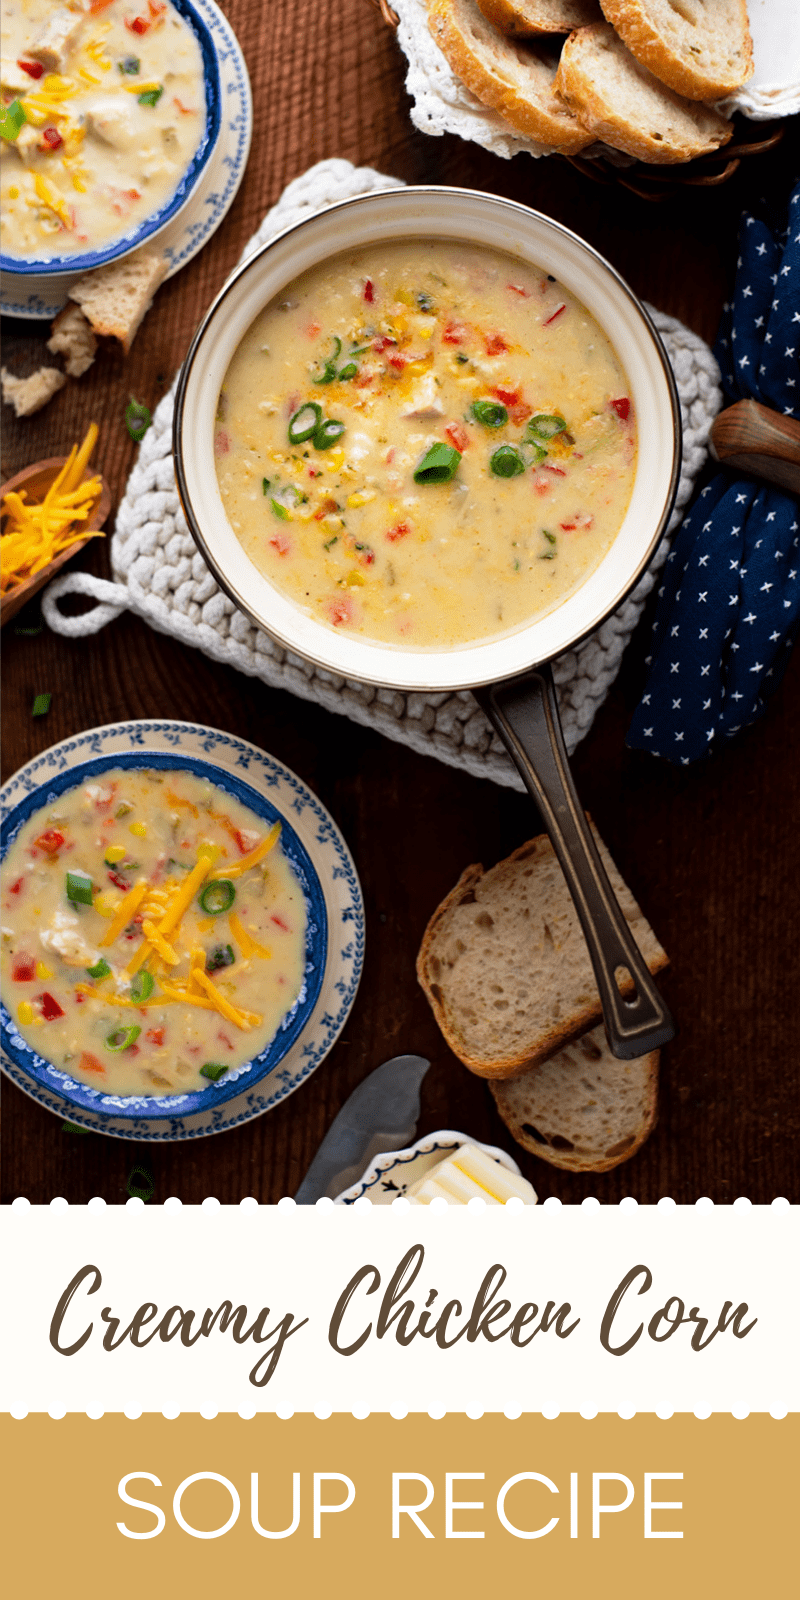 Chicken Corn Soup Pin - Comforting Creamy Chicken Corn Soup with a Hint of Heat